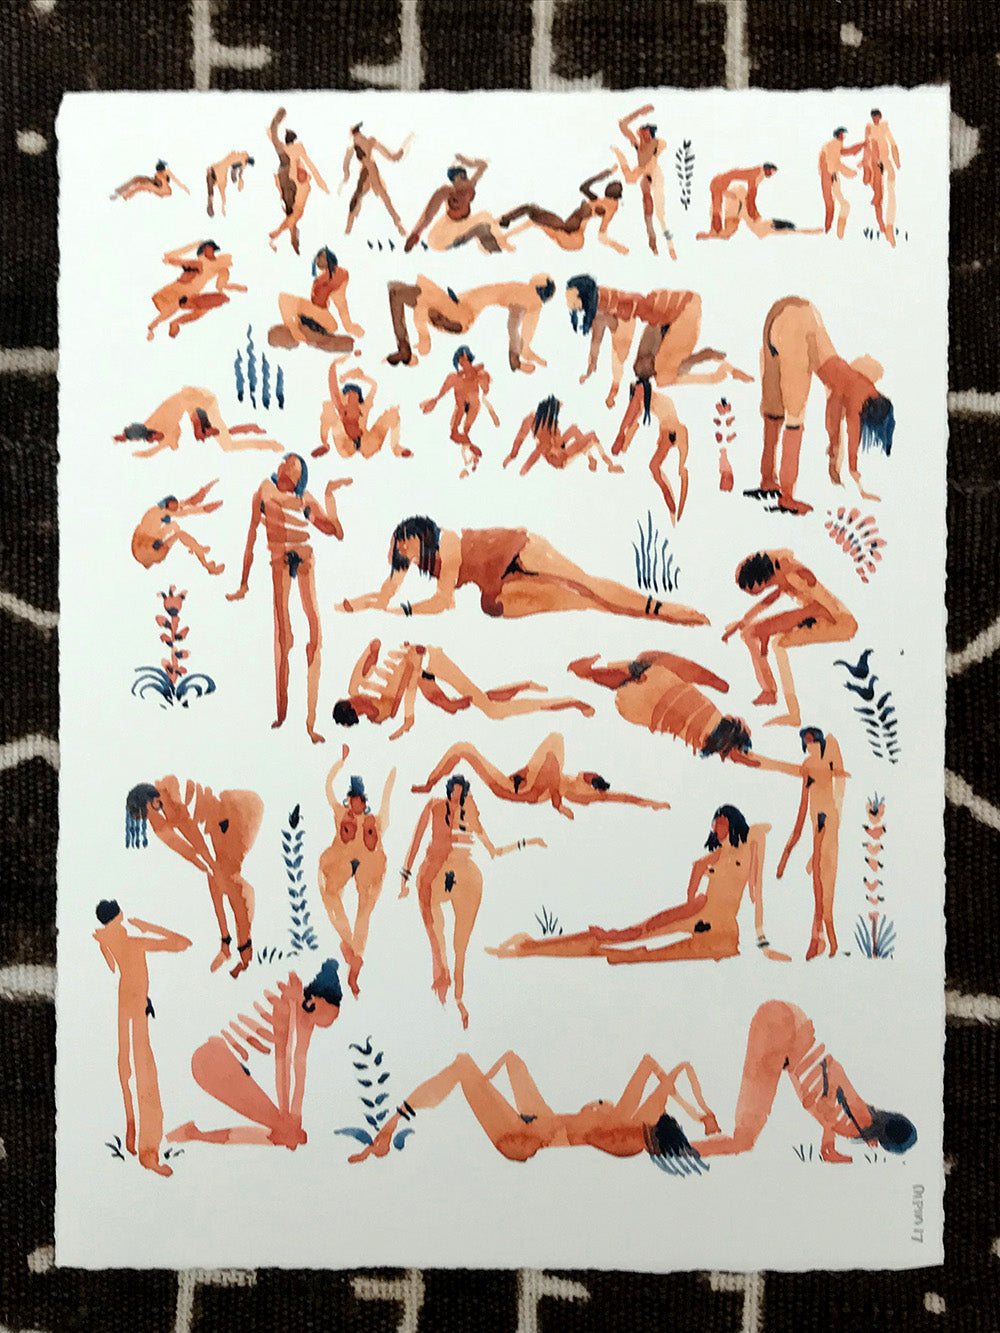 Original Art- Naked Situations